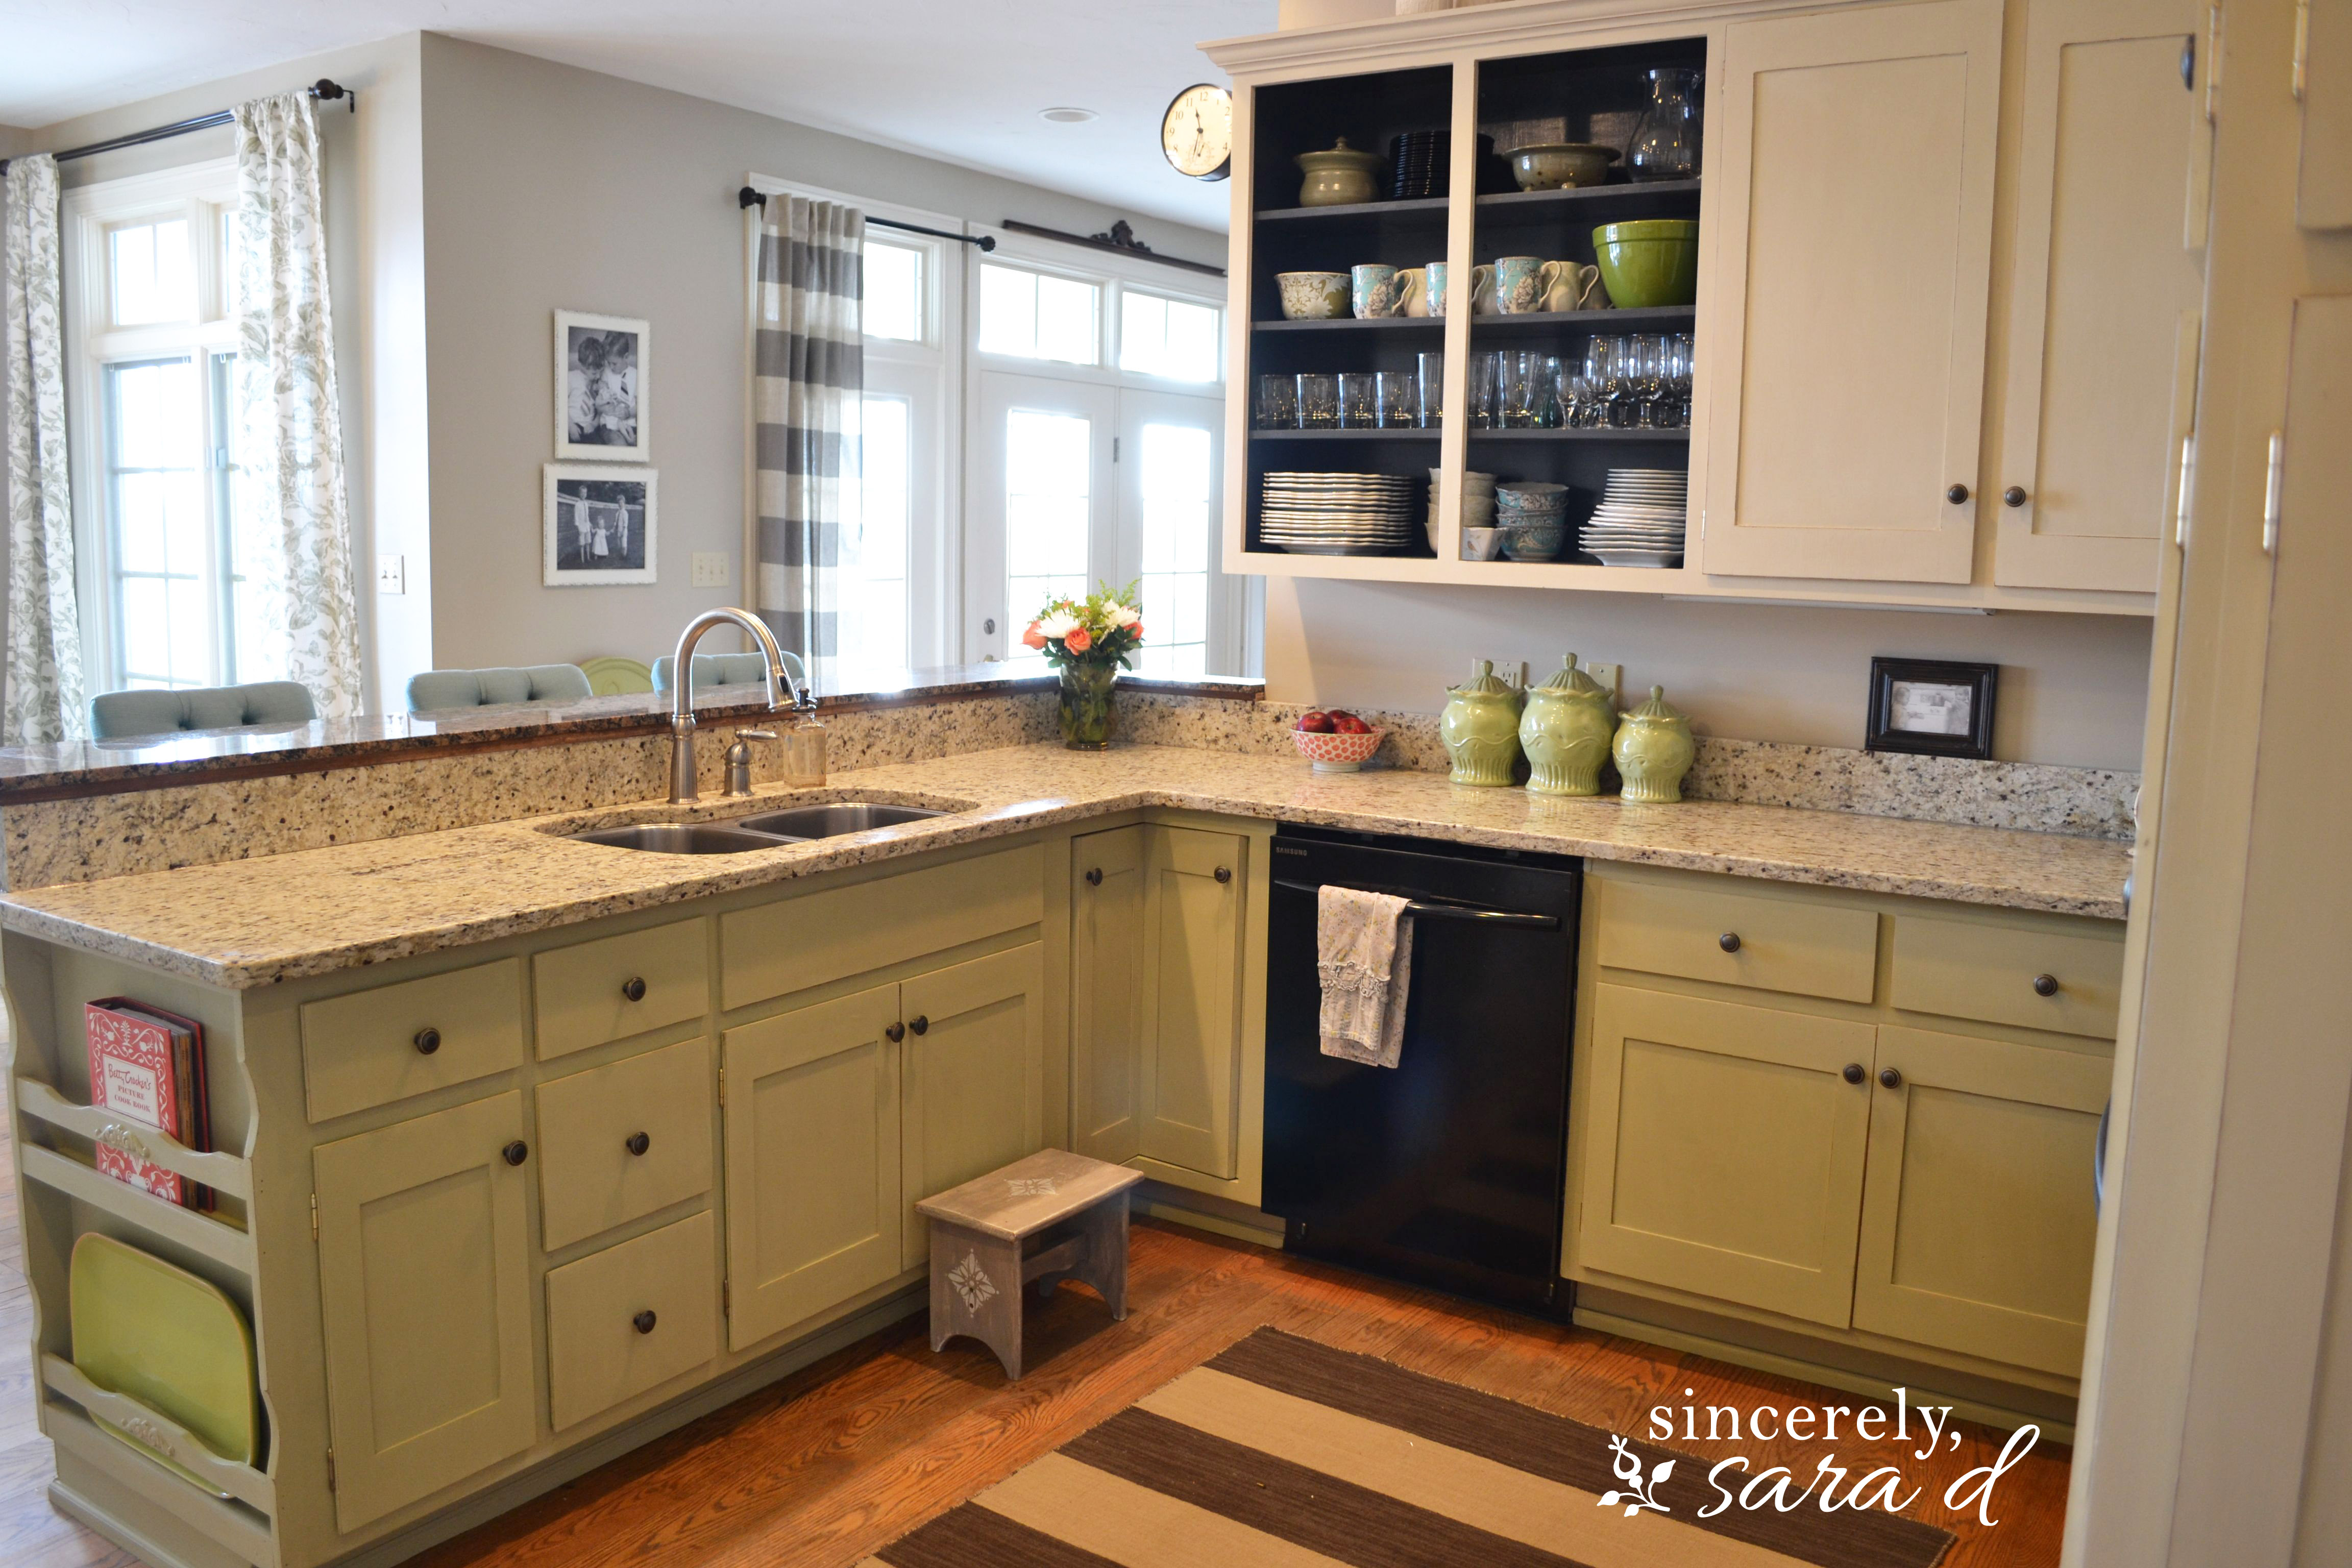 Gracious Denver S Kitchen Cabinets Painting Kitchen Cabinets Chalk Paint Update Sara S Kitchen Cabinets Refacing Chalk Paint Update Painting Kitchen Cabinets kitchen Pictures Of Kitchen Cabinets